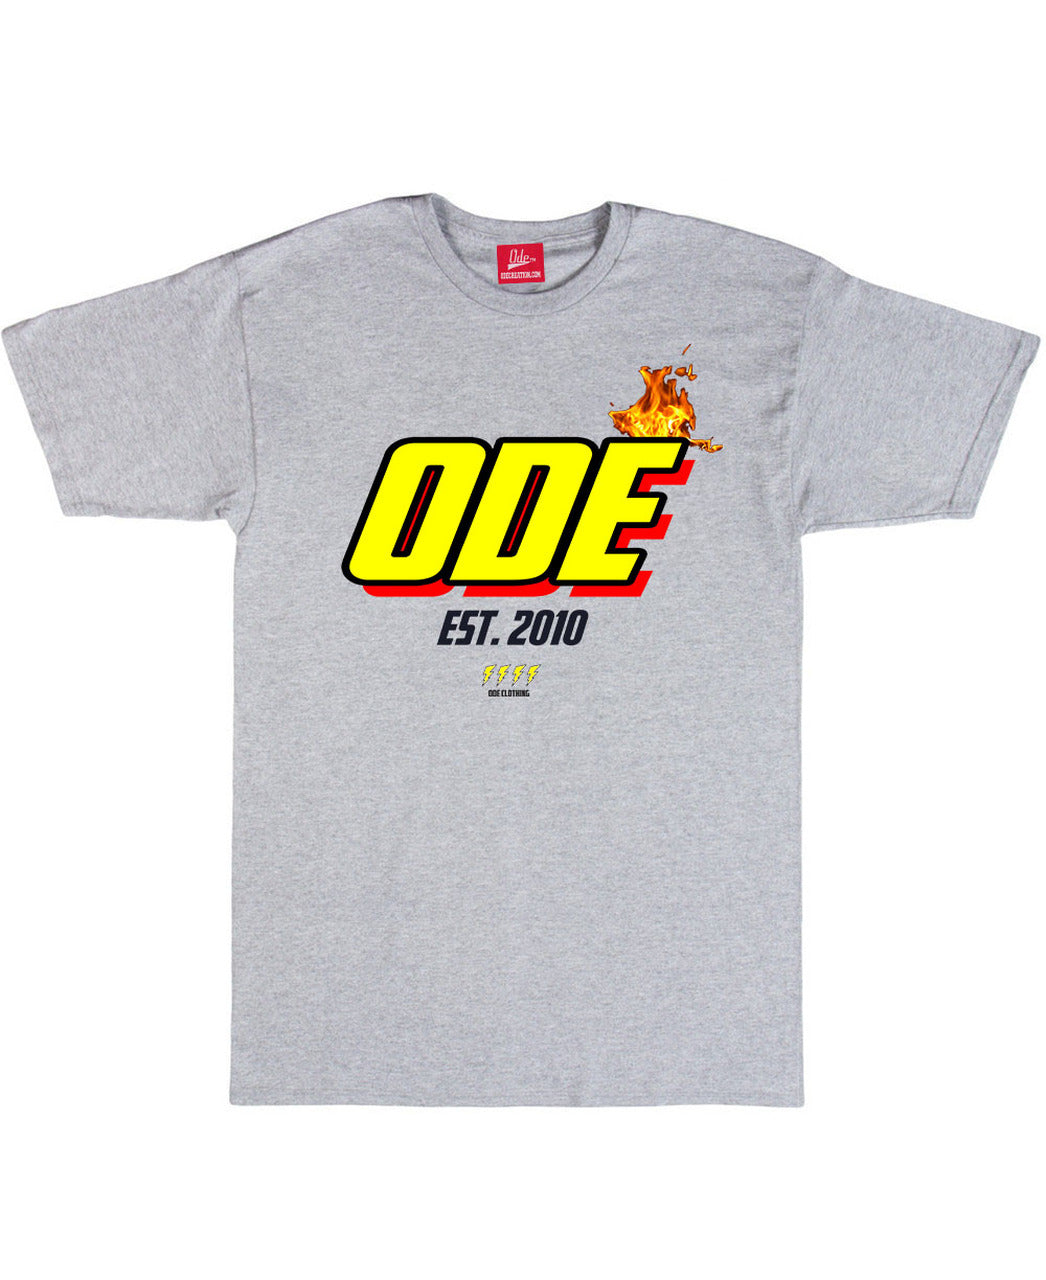 The Ode Flame Shirt- Grey